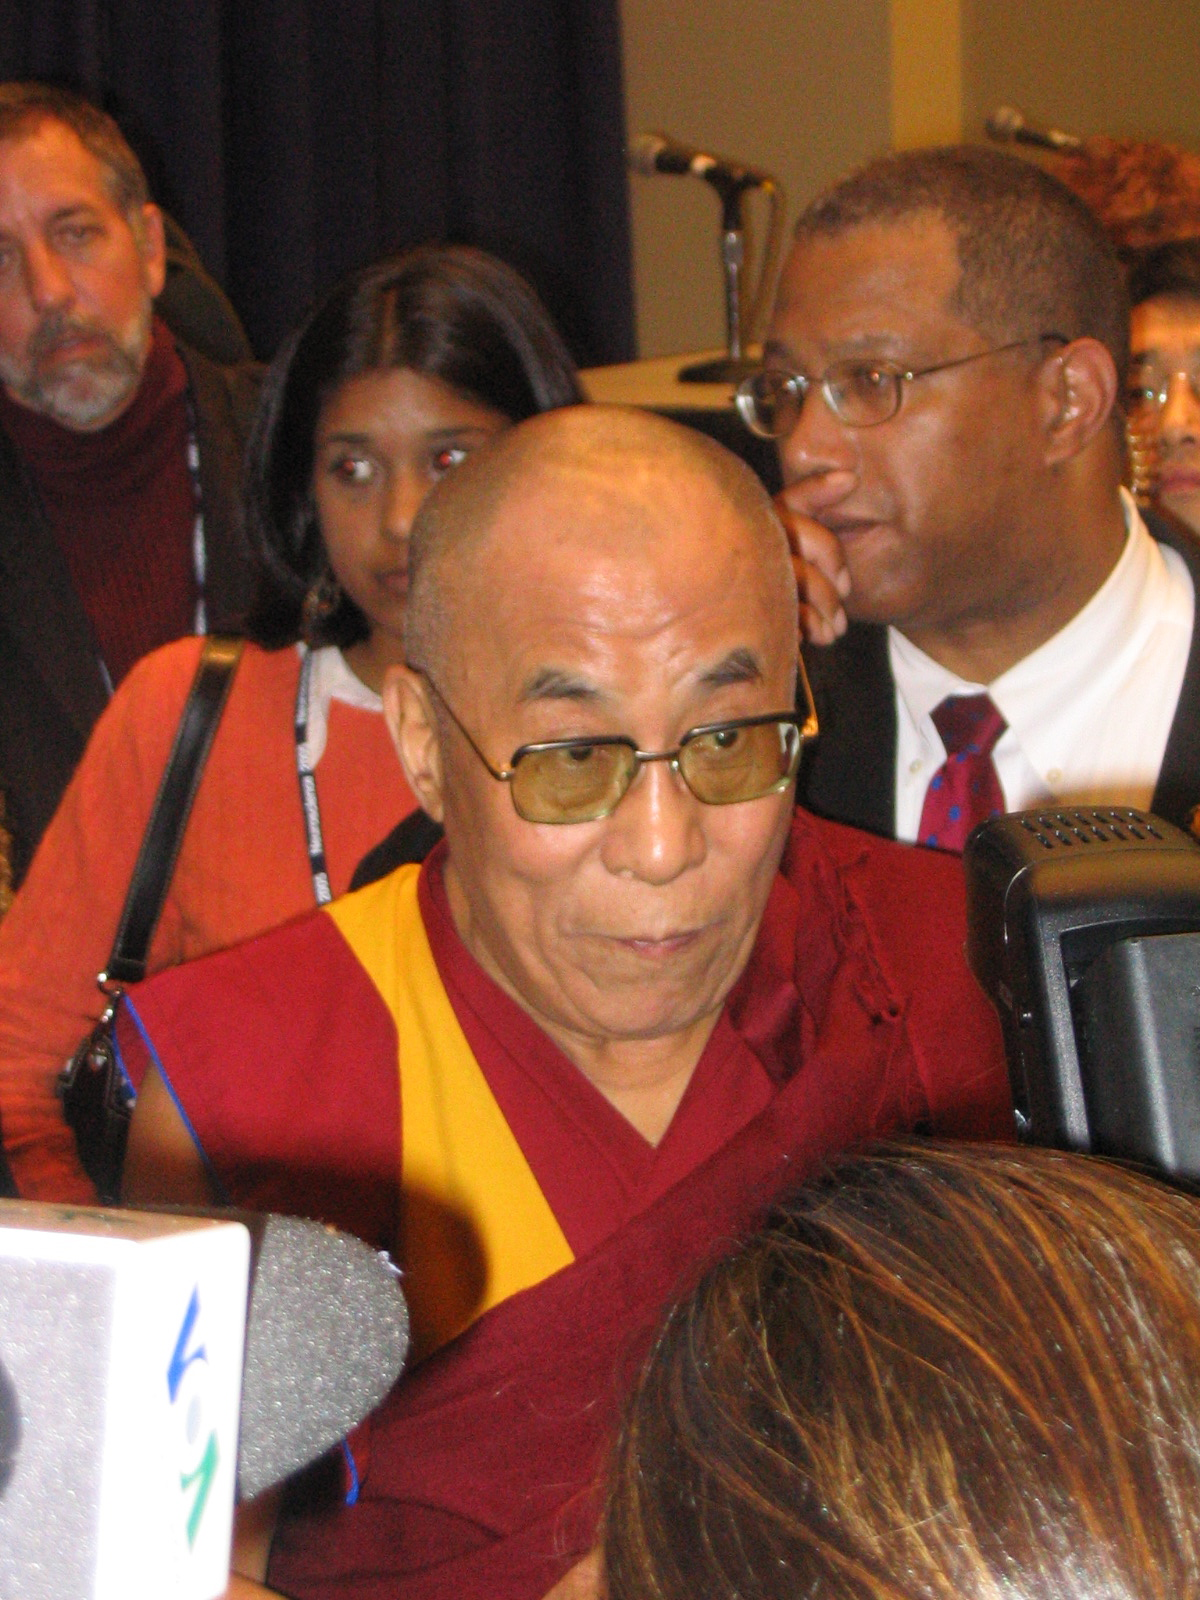 Dalai Lama, as close as it gets